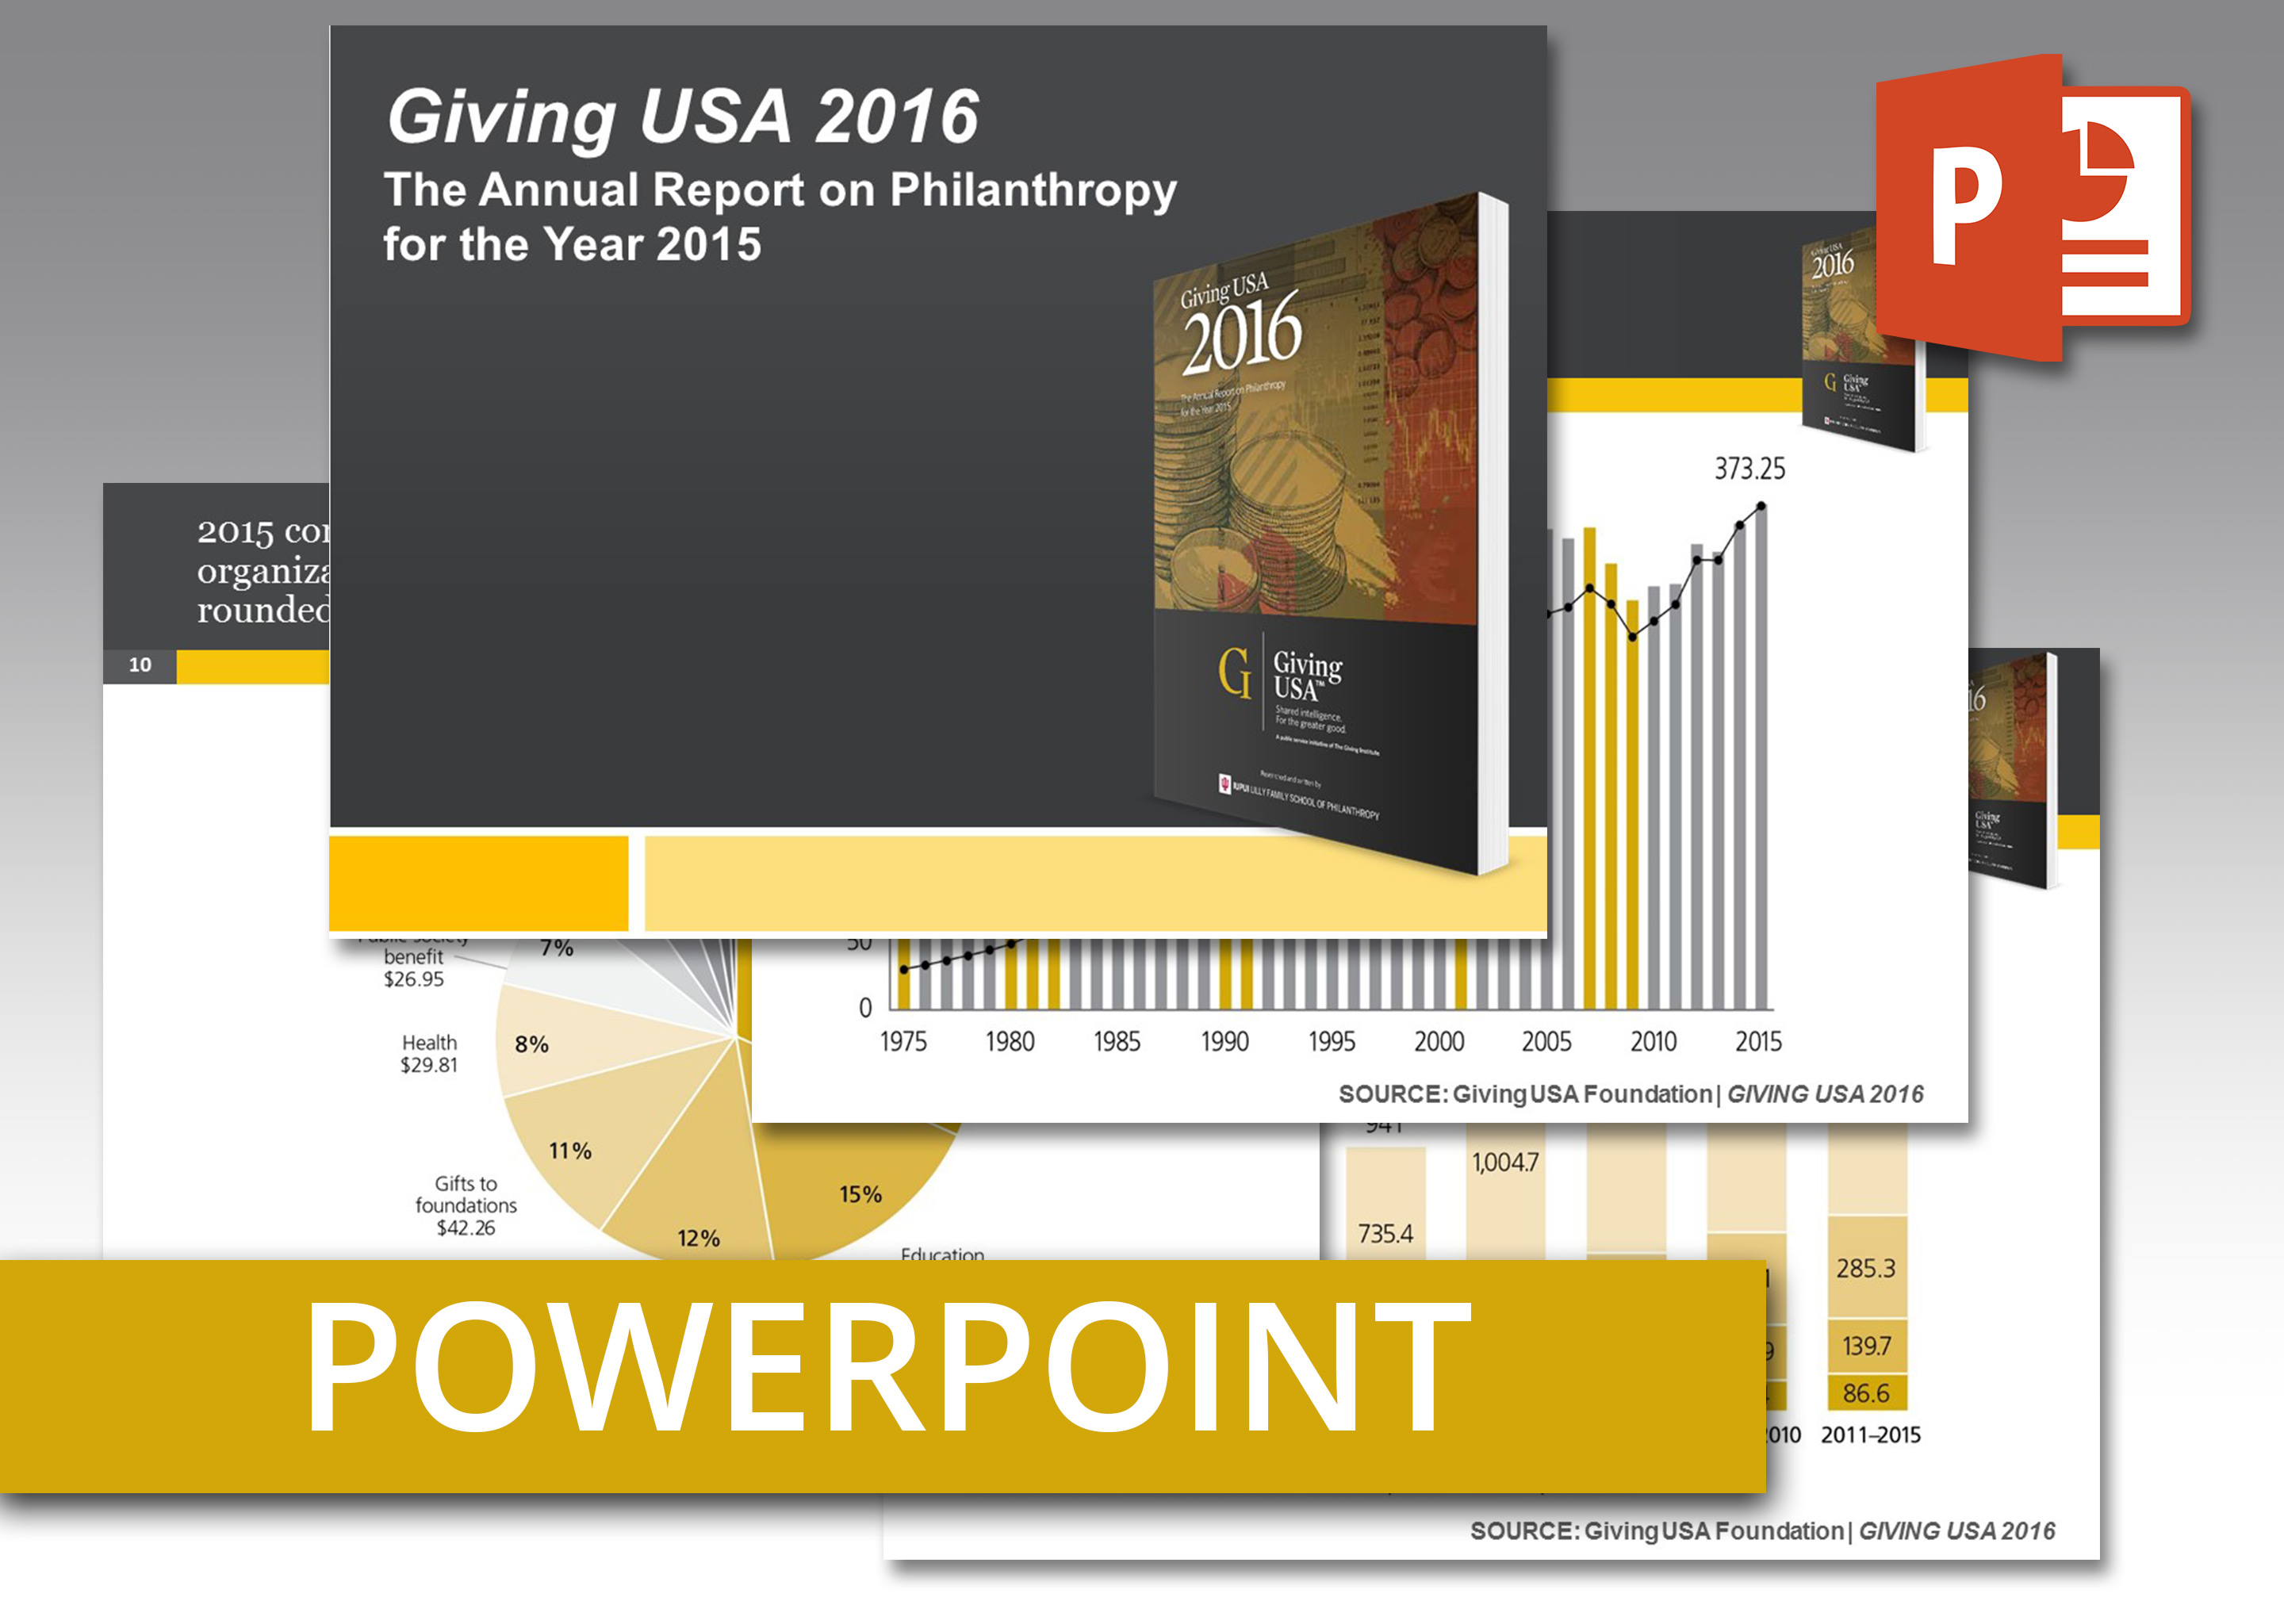 Usdgus  Inspiring Giving Usa  Powerpoint An Easytouse Presentation Of Report  With Outstanding Giving Usa  Powerpoint An Easytouse Presentation Of Report Findings Including Talking Points With Cool Powerpoint For Windows Xp Also Powerpoint Change Slide Dimensions In Addition Tutorial For Powerpoint And Freud Powerpoint As Well As Professional Looking Powerpoint Templates Additionally Special Senses Powerpoint From Givingusaorg With Usdgus  Outstanding Giving Usa  Powerpoint An Easytouse Presentation Of Report  With Cool Giving Usa  Powerpoint An Easytouse Presentation Of Report Findings Including Talking Points And Inspiring Powerpoint For Windows Xp Also Powerpoint Change Slide Dimensions In Addition Tutorial For Powerpoint From Givingusaorg